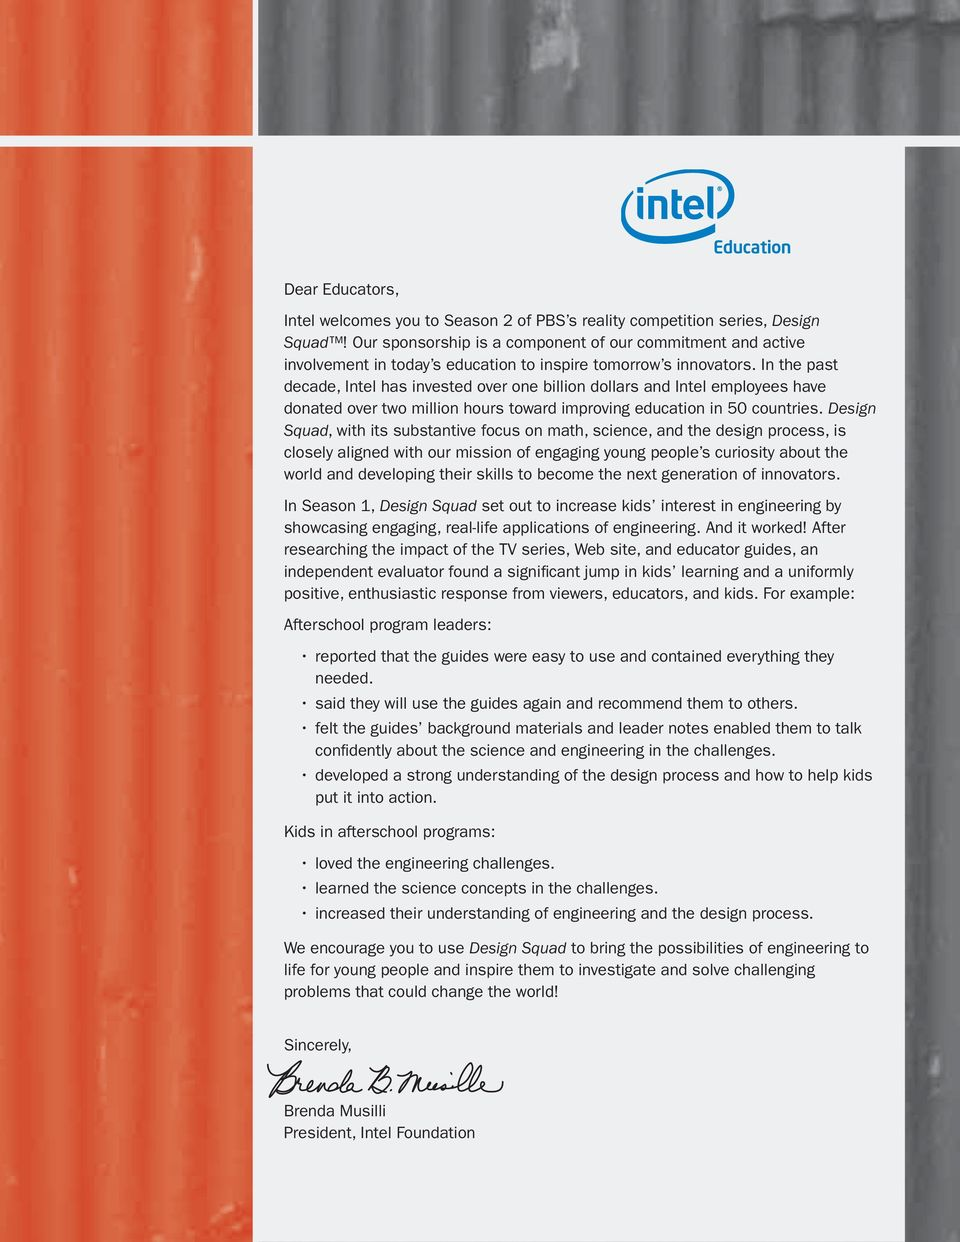 In the past decade, Intel has invested over one billion dollars and Intel employees have donated over two million hours toward improving education in 50 countries.